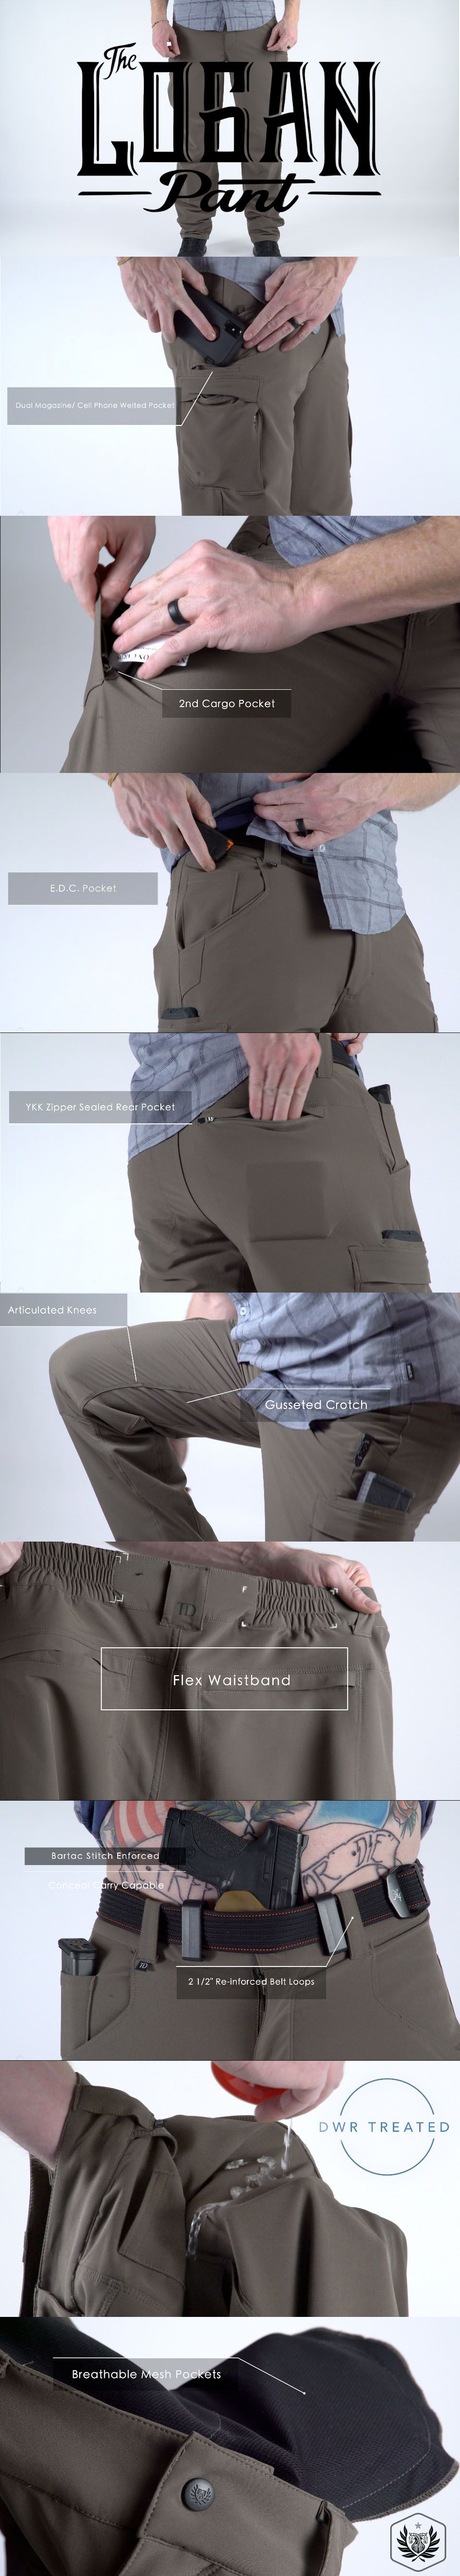 f64ab605 Check out the best tactical gear and equipment, including the TD Carlos Ray  Pants 2.0. We have the best customer service, guaranteed!